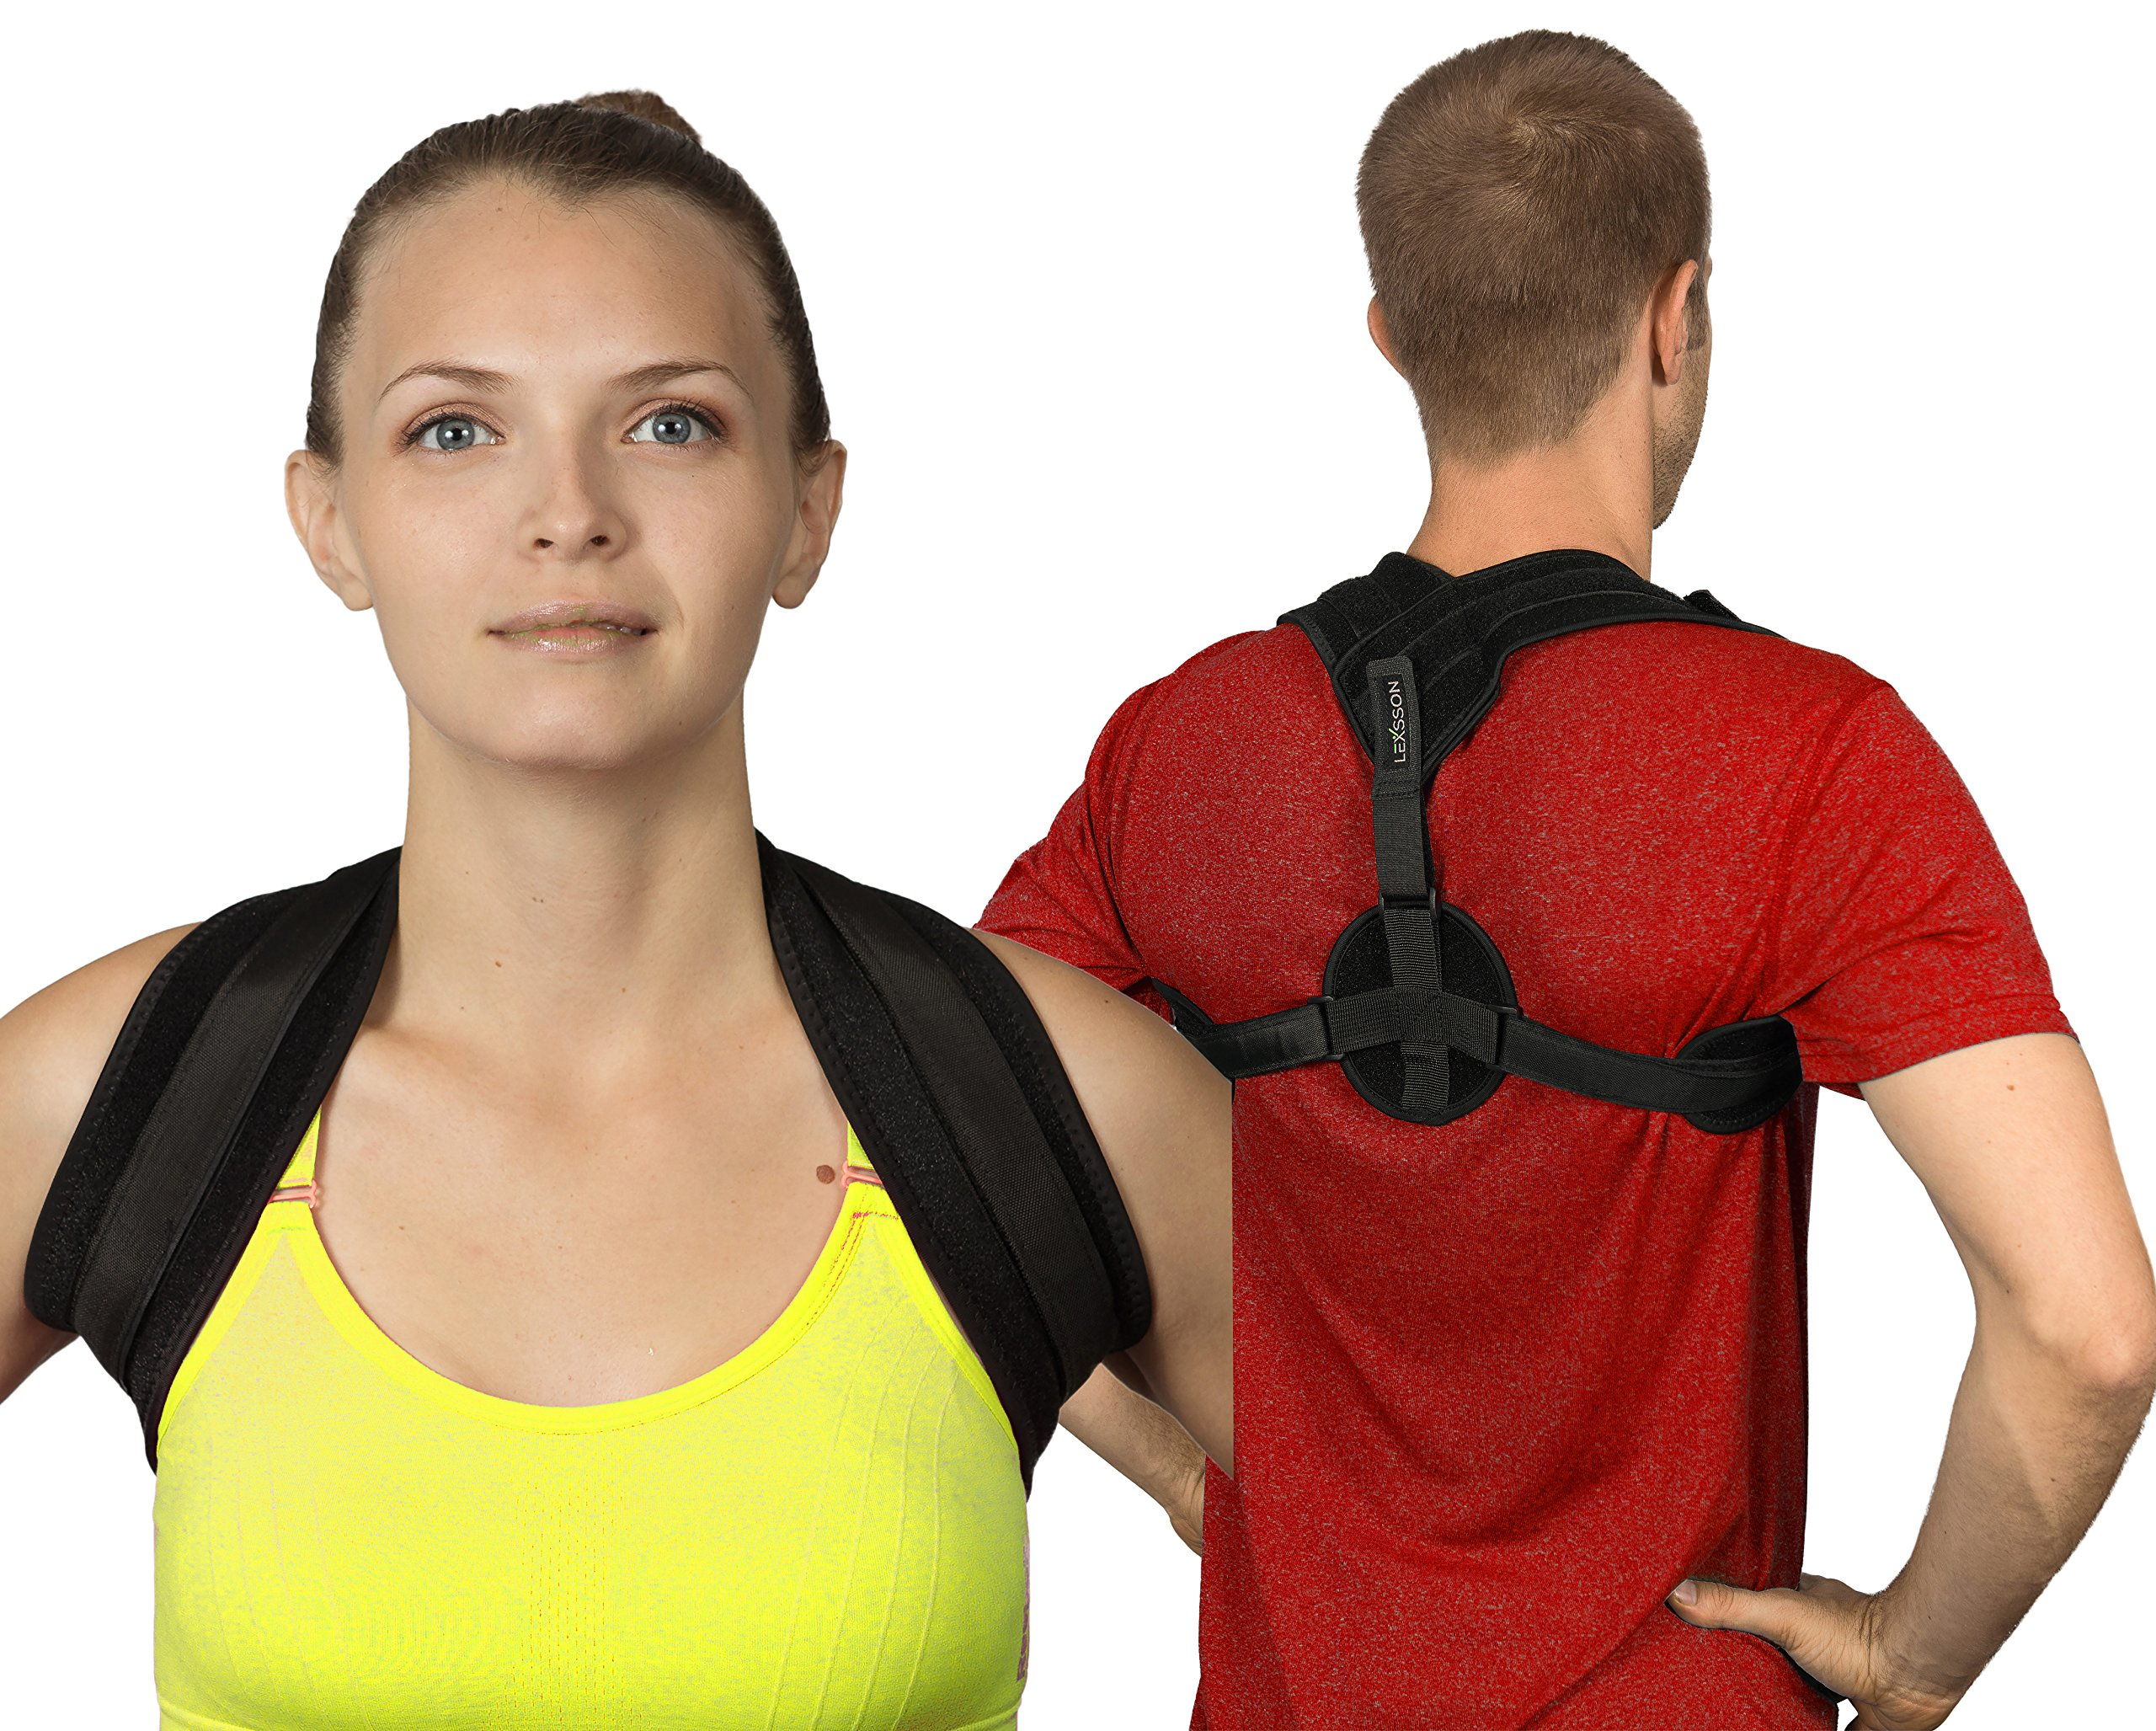 LEXSSON Posture Corrector Back Support Brace for Men & Women: Adjustable & Wearable Medical Posture Device with Comfort Shoulder Straps to Improve Lumbar, Thoracic & Cervical Pain & Slouching